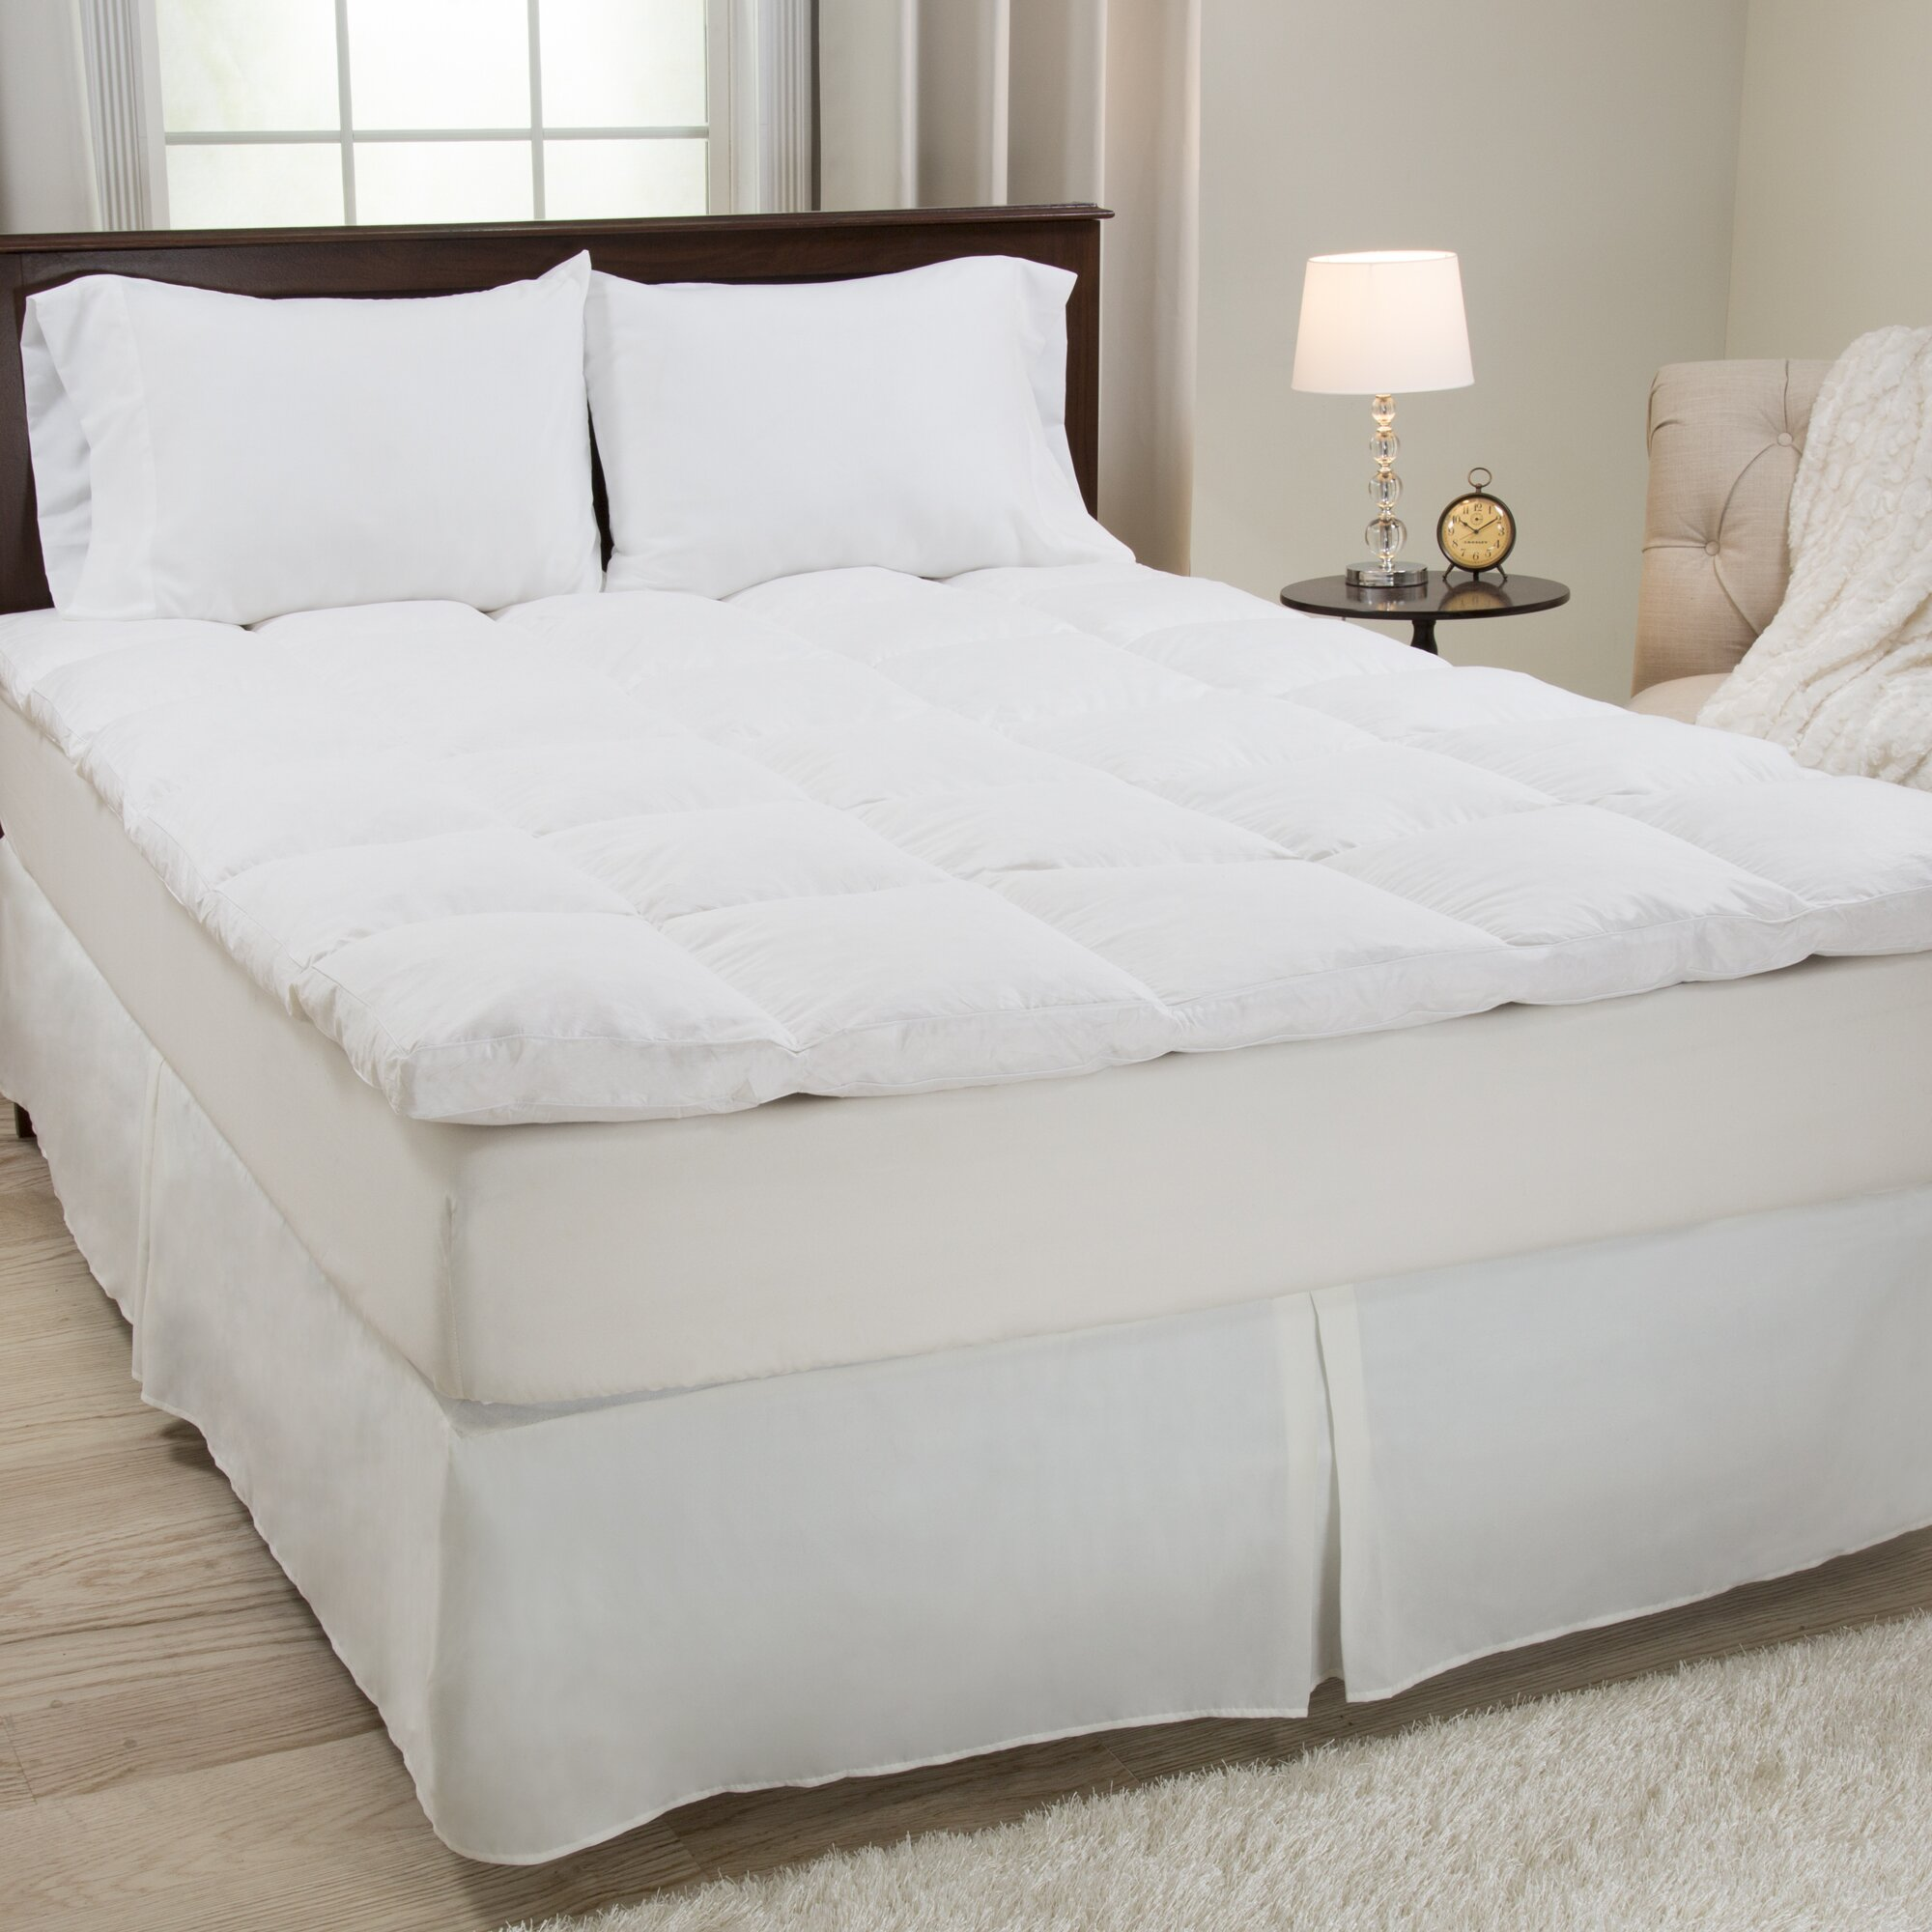 Lavish Home Duck Feather 233 Thread Count Mattress Topper